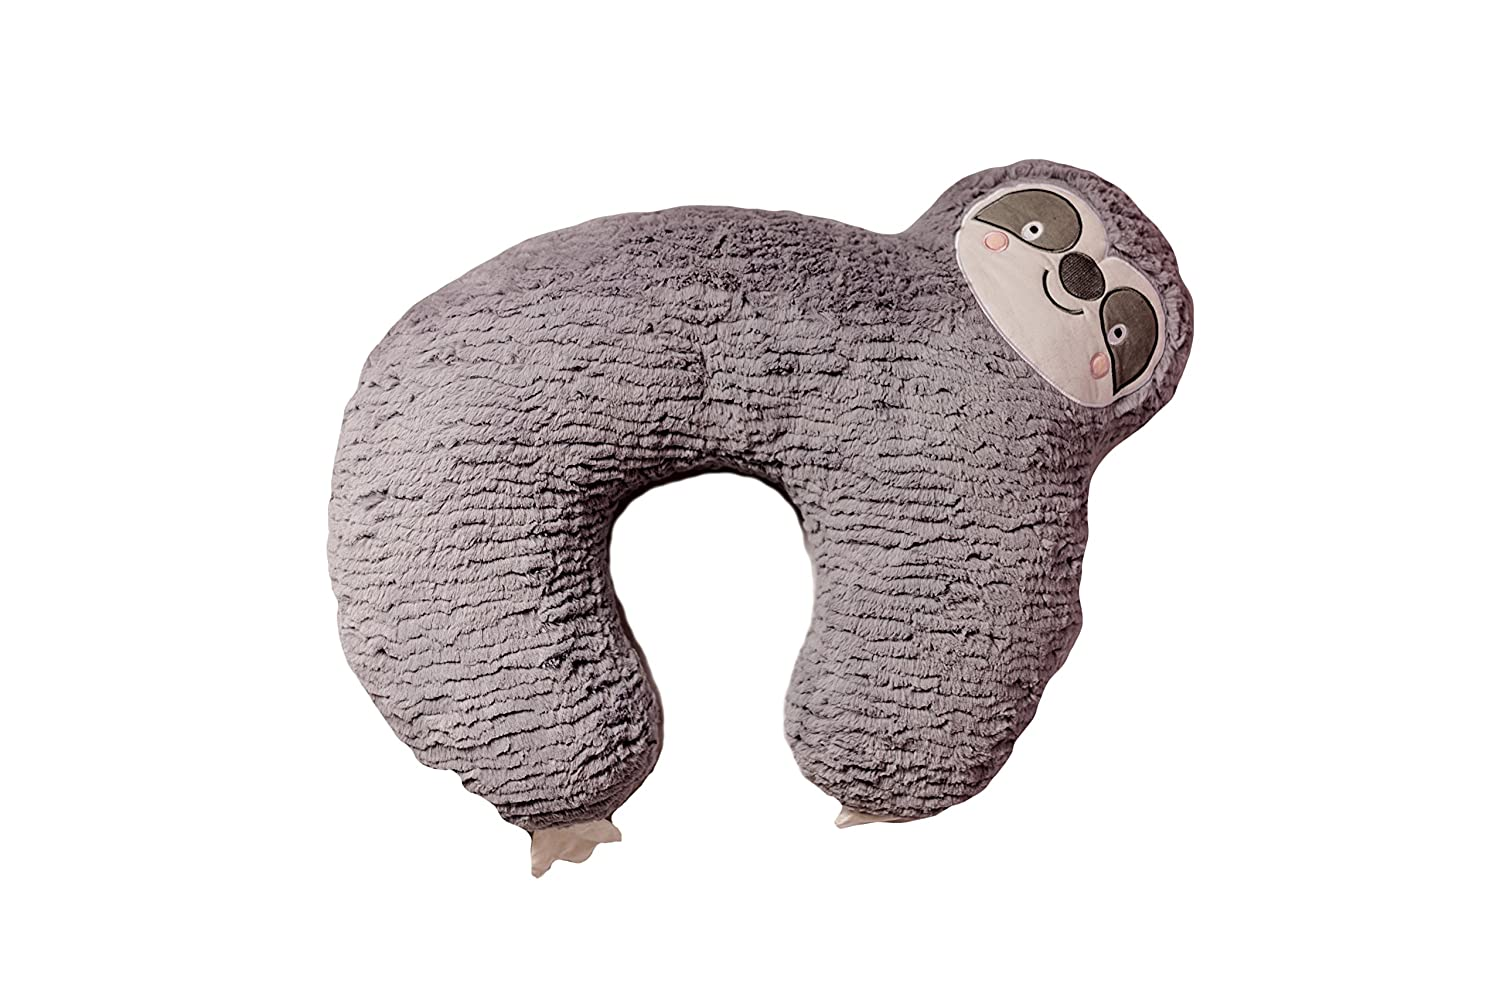 Bizzi Growin Unique Grey Sloth Soft Nursing Pregnancy Breast Feeding Support Pillow/Cushion